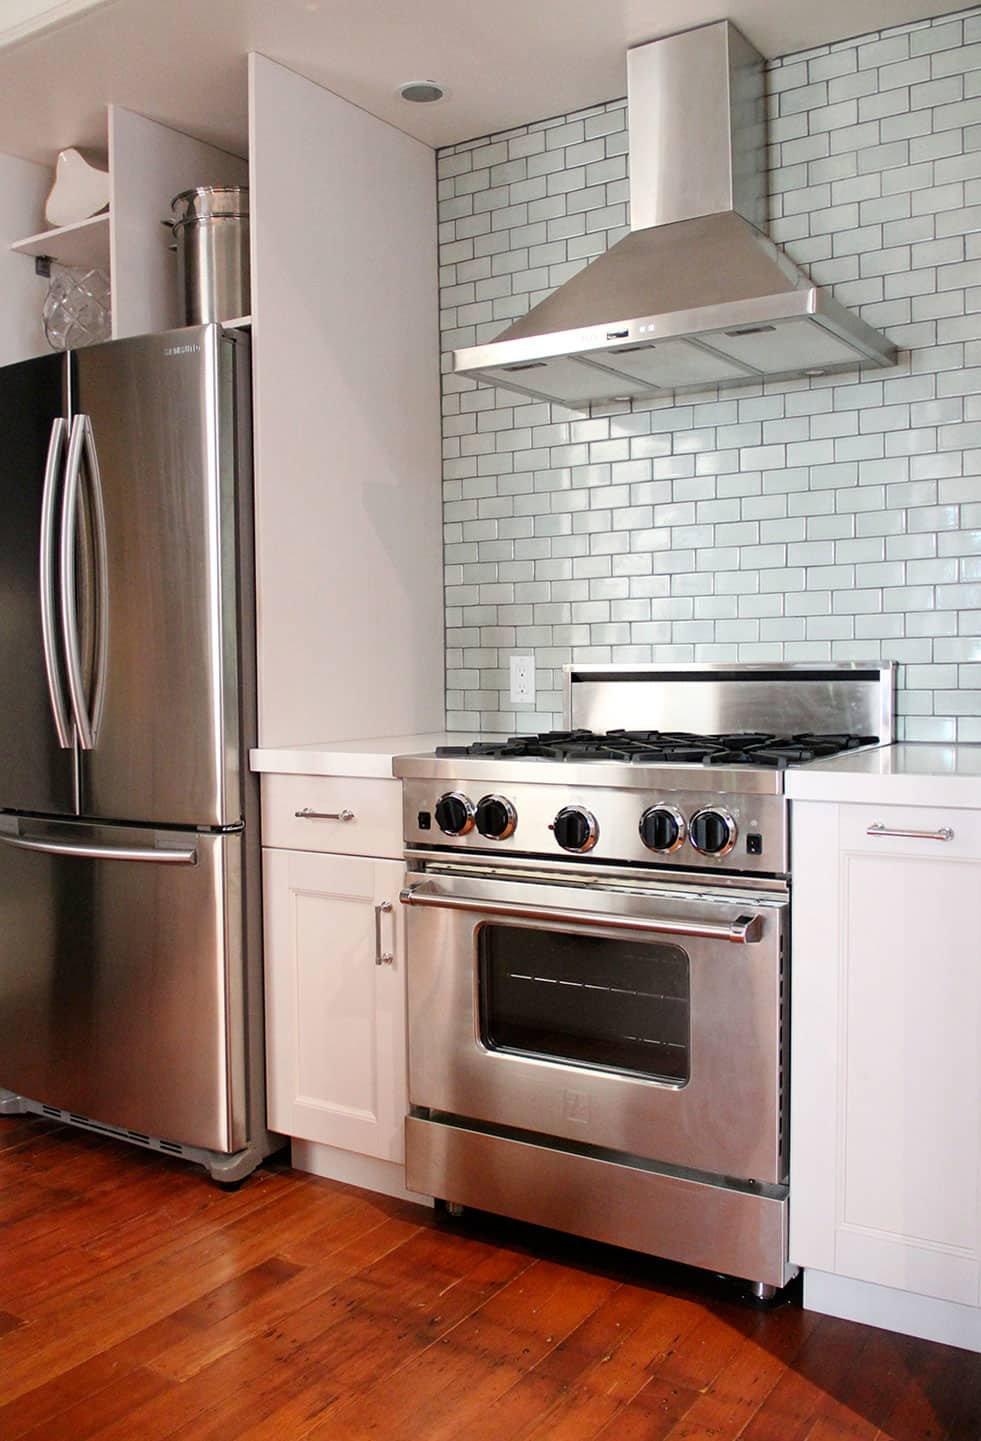 Get the Look: Timeless, Sophisticated Kitchen